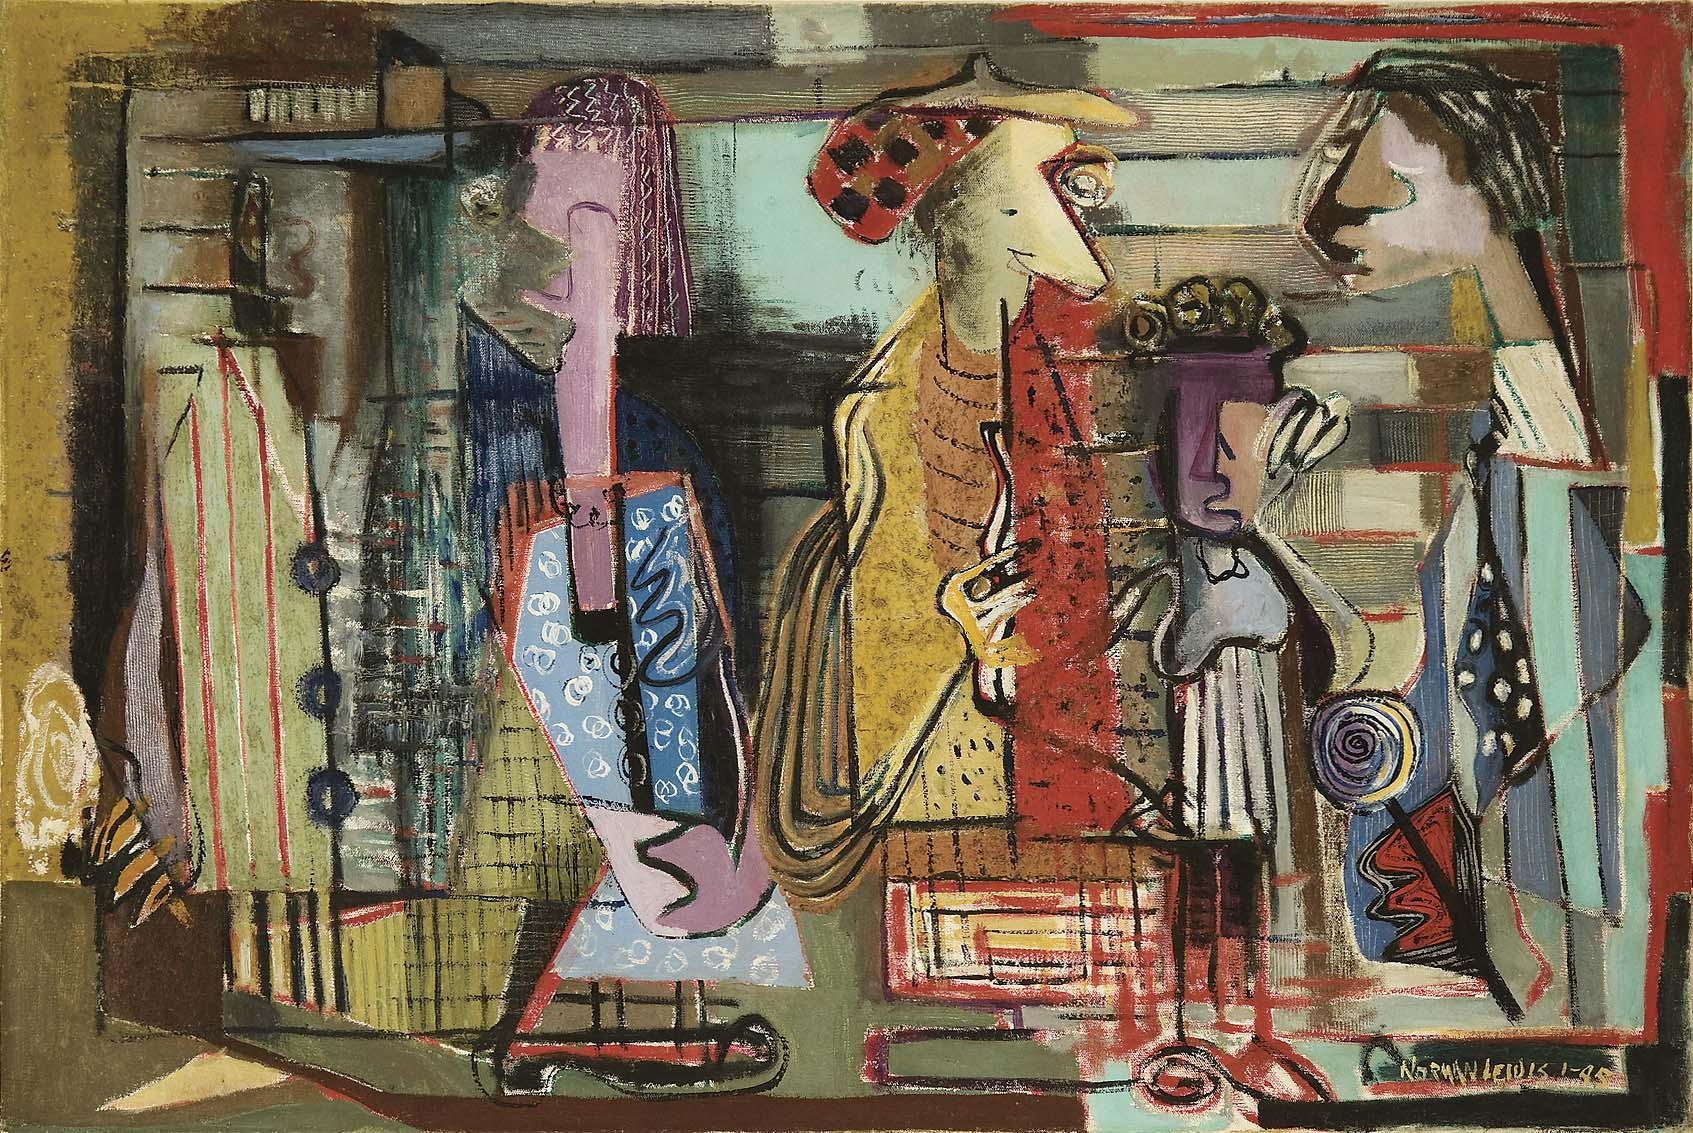 NORMAN LEWIS,   Untitled (Subway Station) ,  c. 1945, oil and sand on canvas, 24 x 36 in. On loan from Art Bridges. LX.083.